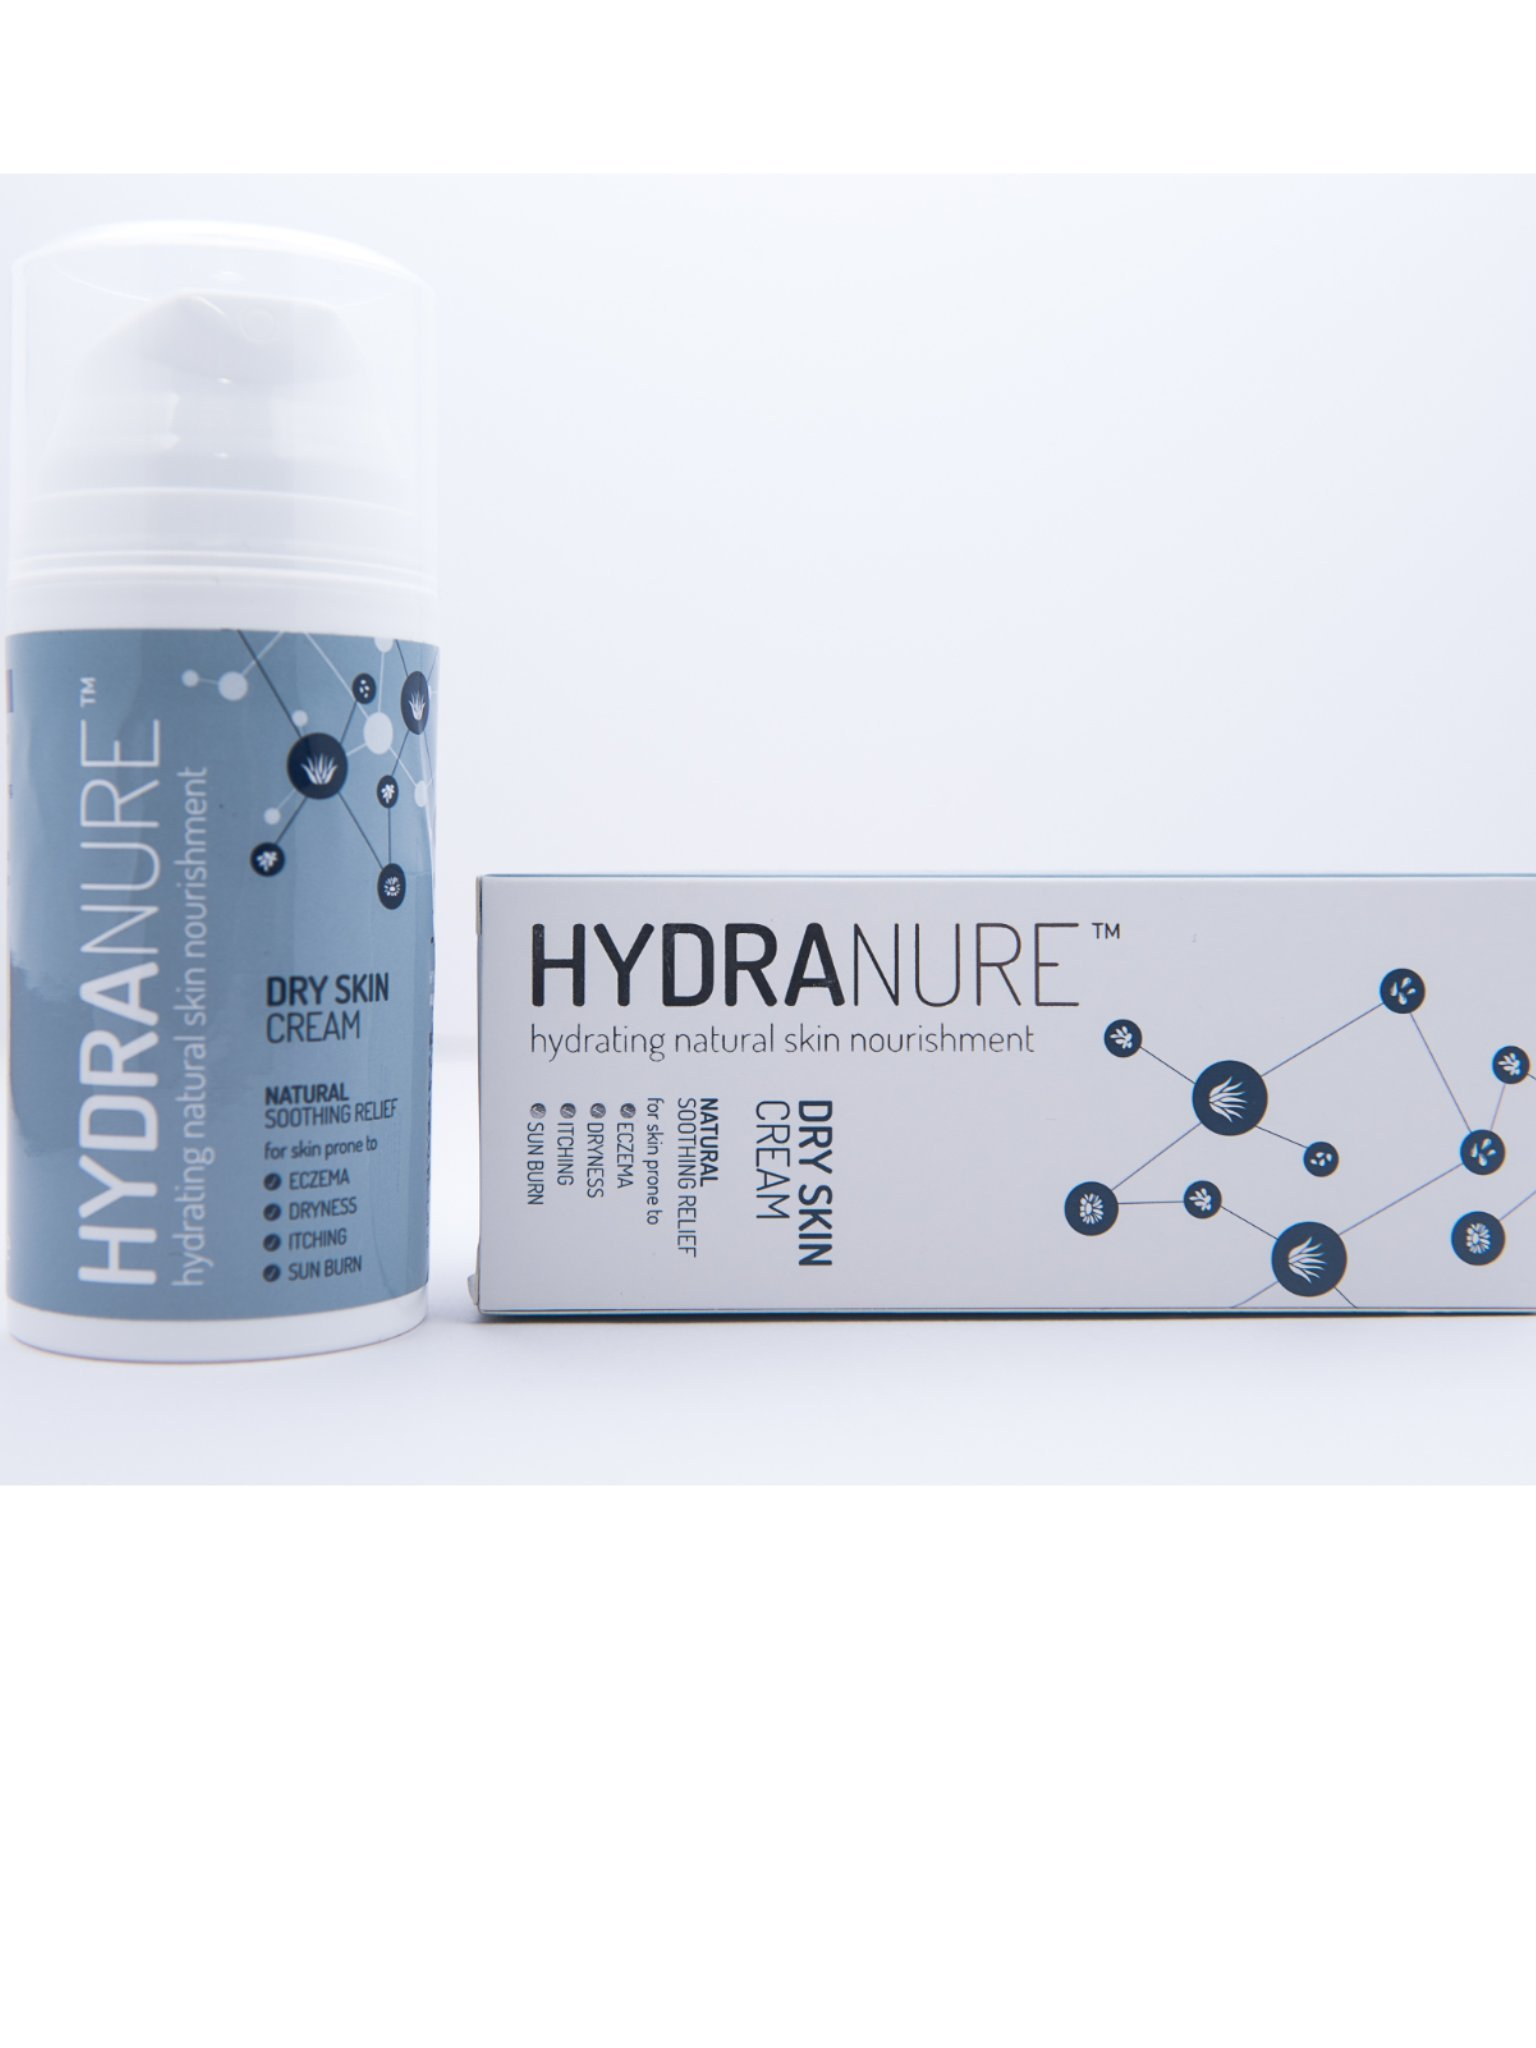 HydraNure Natural Organic Eczema Treatment for Babies 3.4fl oz/100ml - Heals, Soothes & Protects the Skin - Best Remedy for Baby Eczema, Dry Skin, Itchiness, Adult Eczema, Psoriasis, Rosacea, Sunburn.